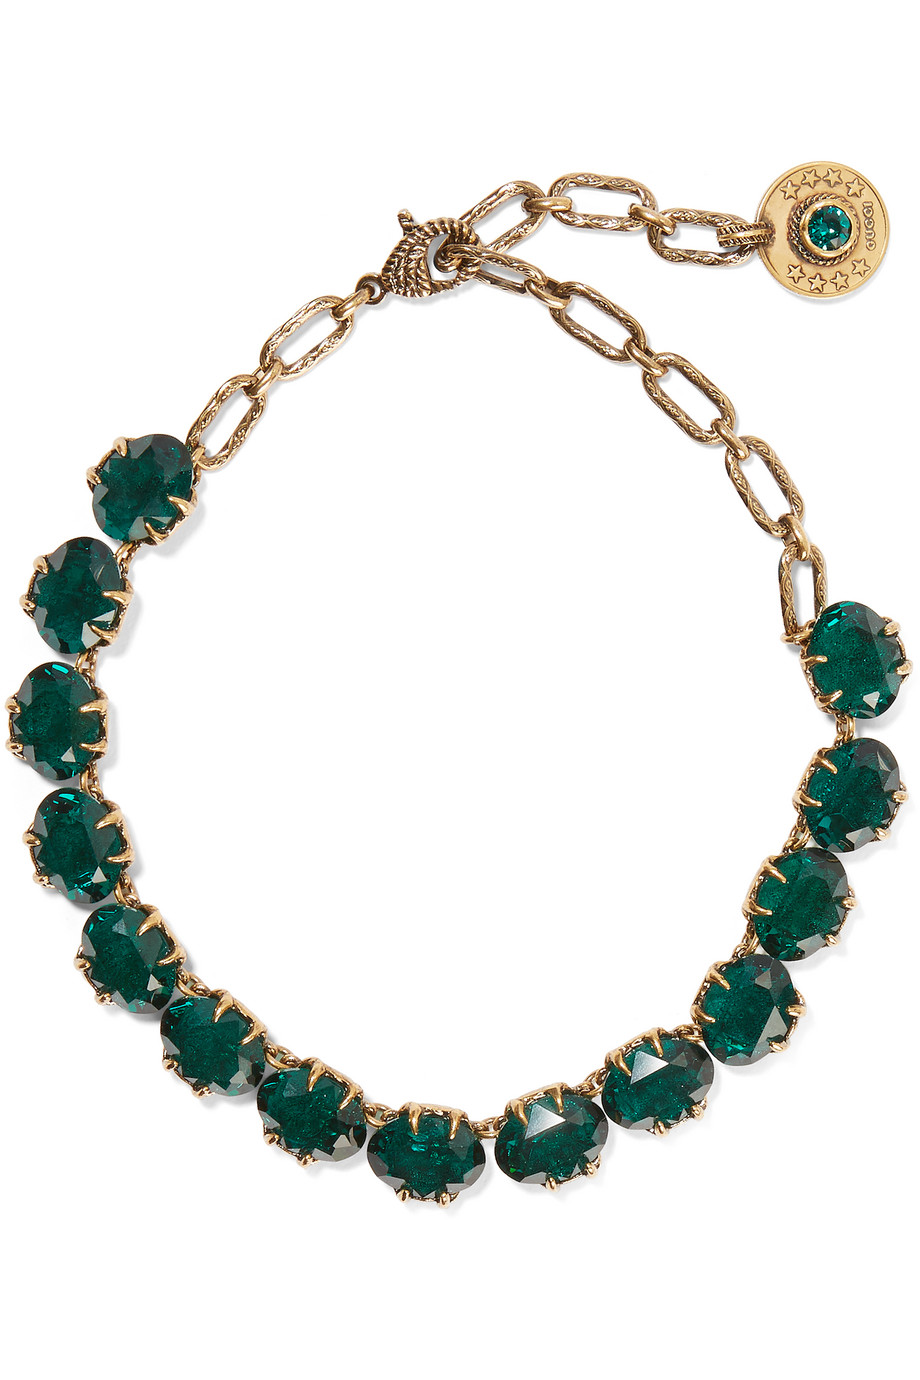 Gucci Burnished Gold-Tone Swarovski Crystal Necklace, Brass/Emerald, Women's